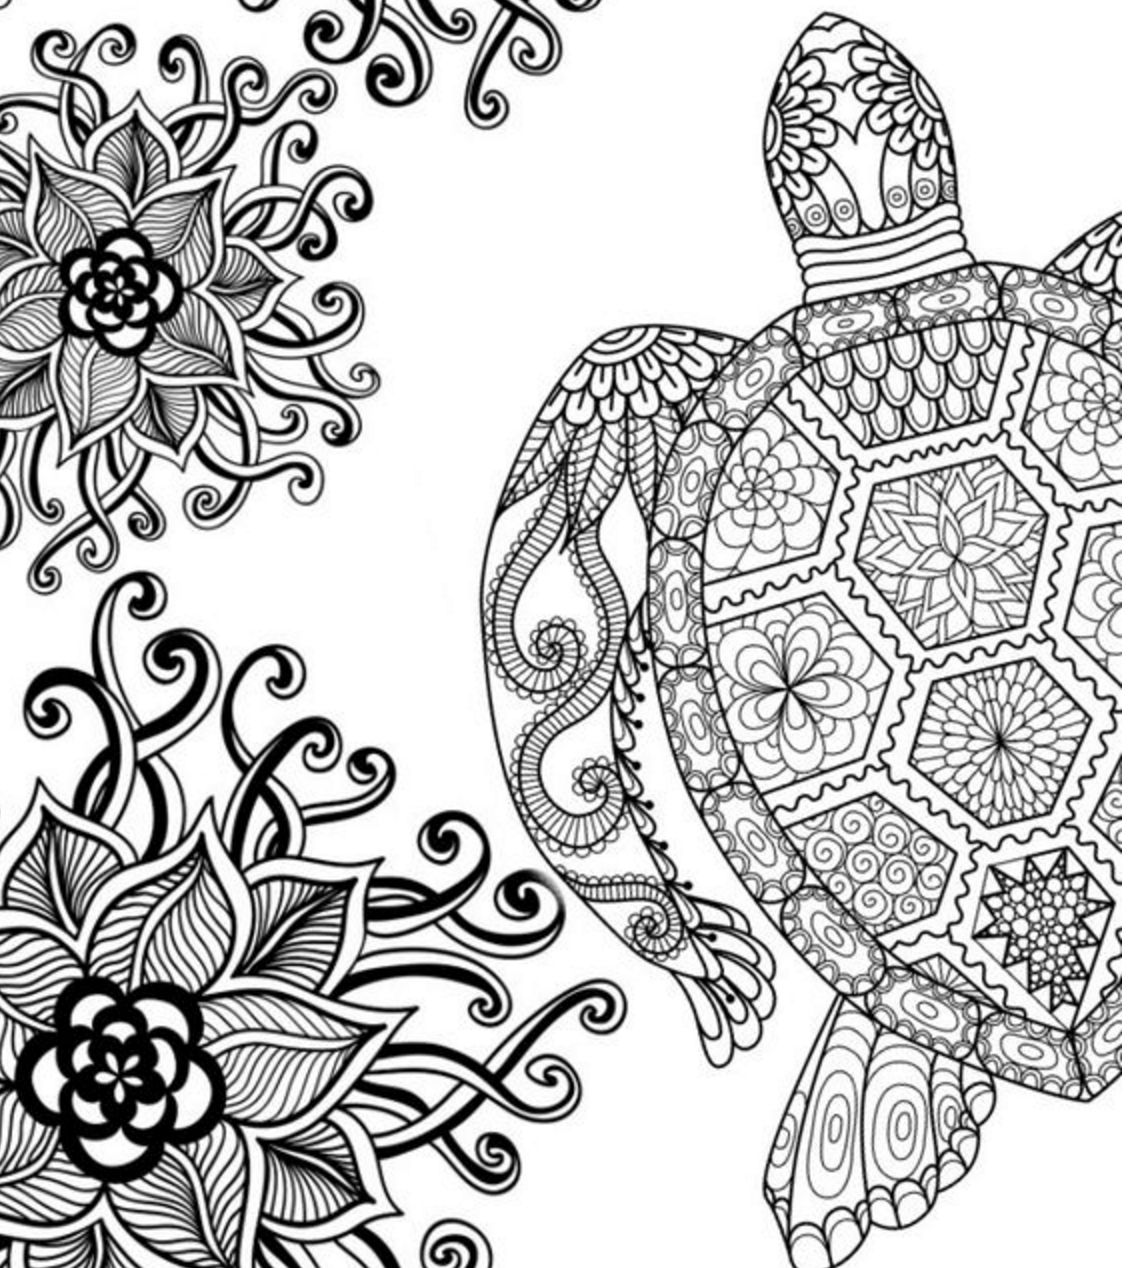 turtle coloring pages for adults sea turtle colored pencil tutorial turtle coloring pages pages adults coloring for turtle